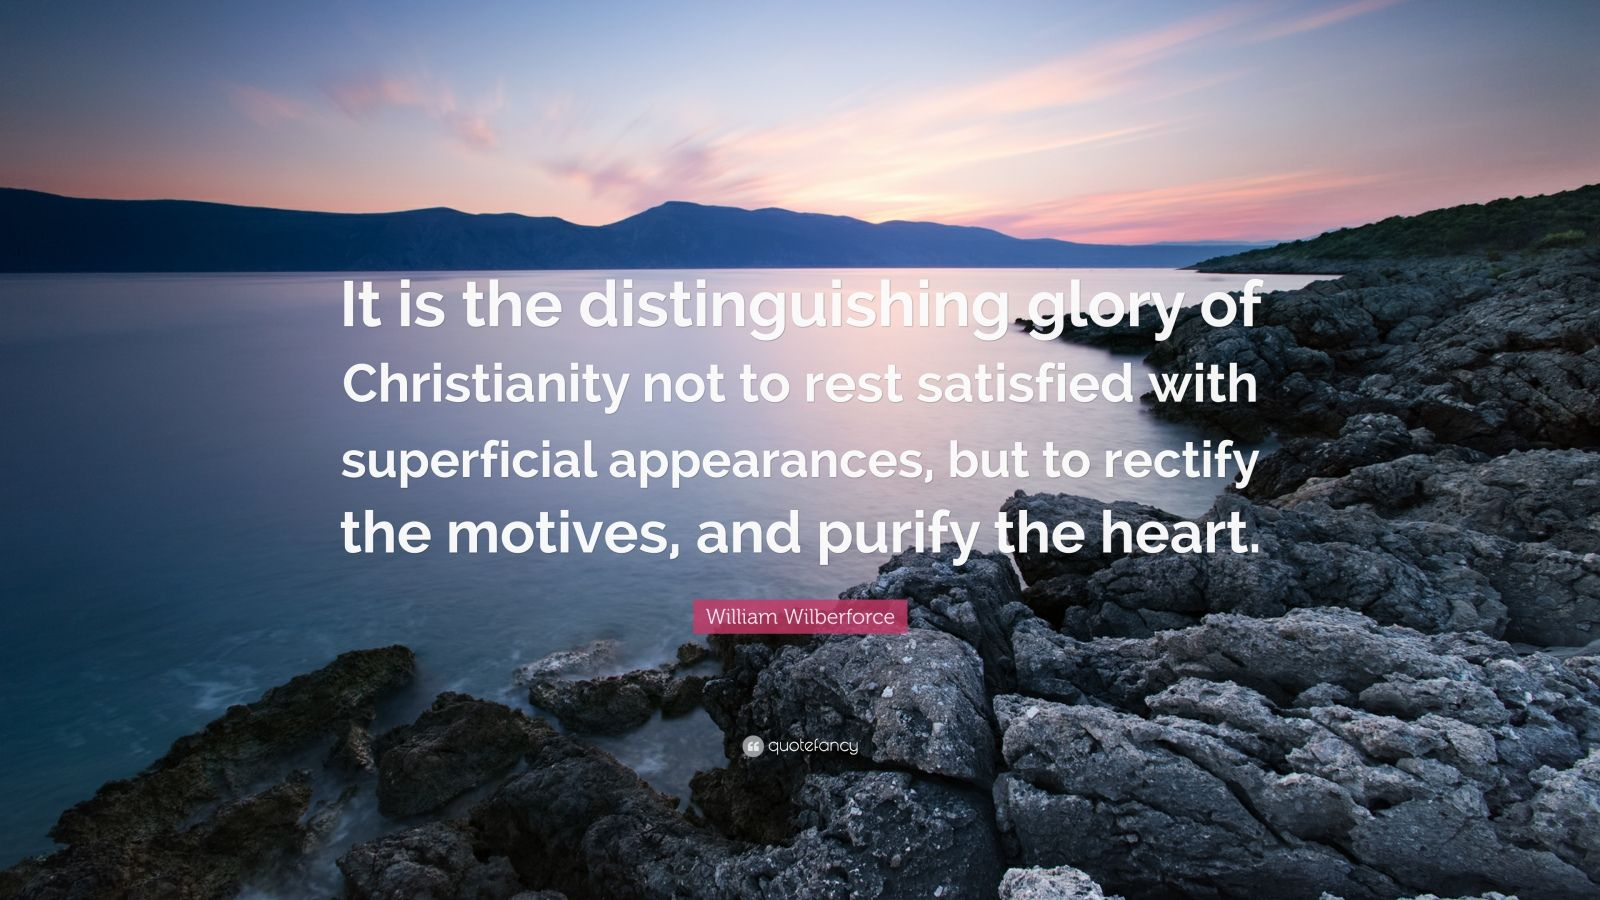 """William Wilberforce Quote: """"It is the distinguishing glory of Christianity not to rest satisfied with superficial appearances, but to rectify the motives, and purify the heart."""""""